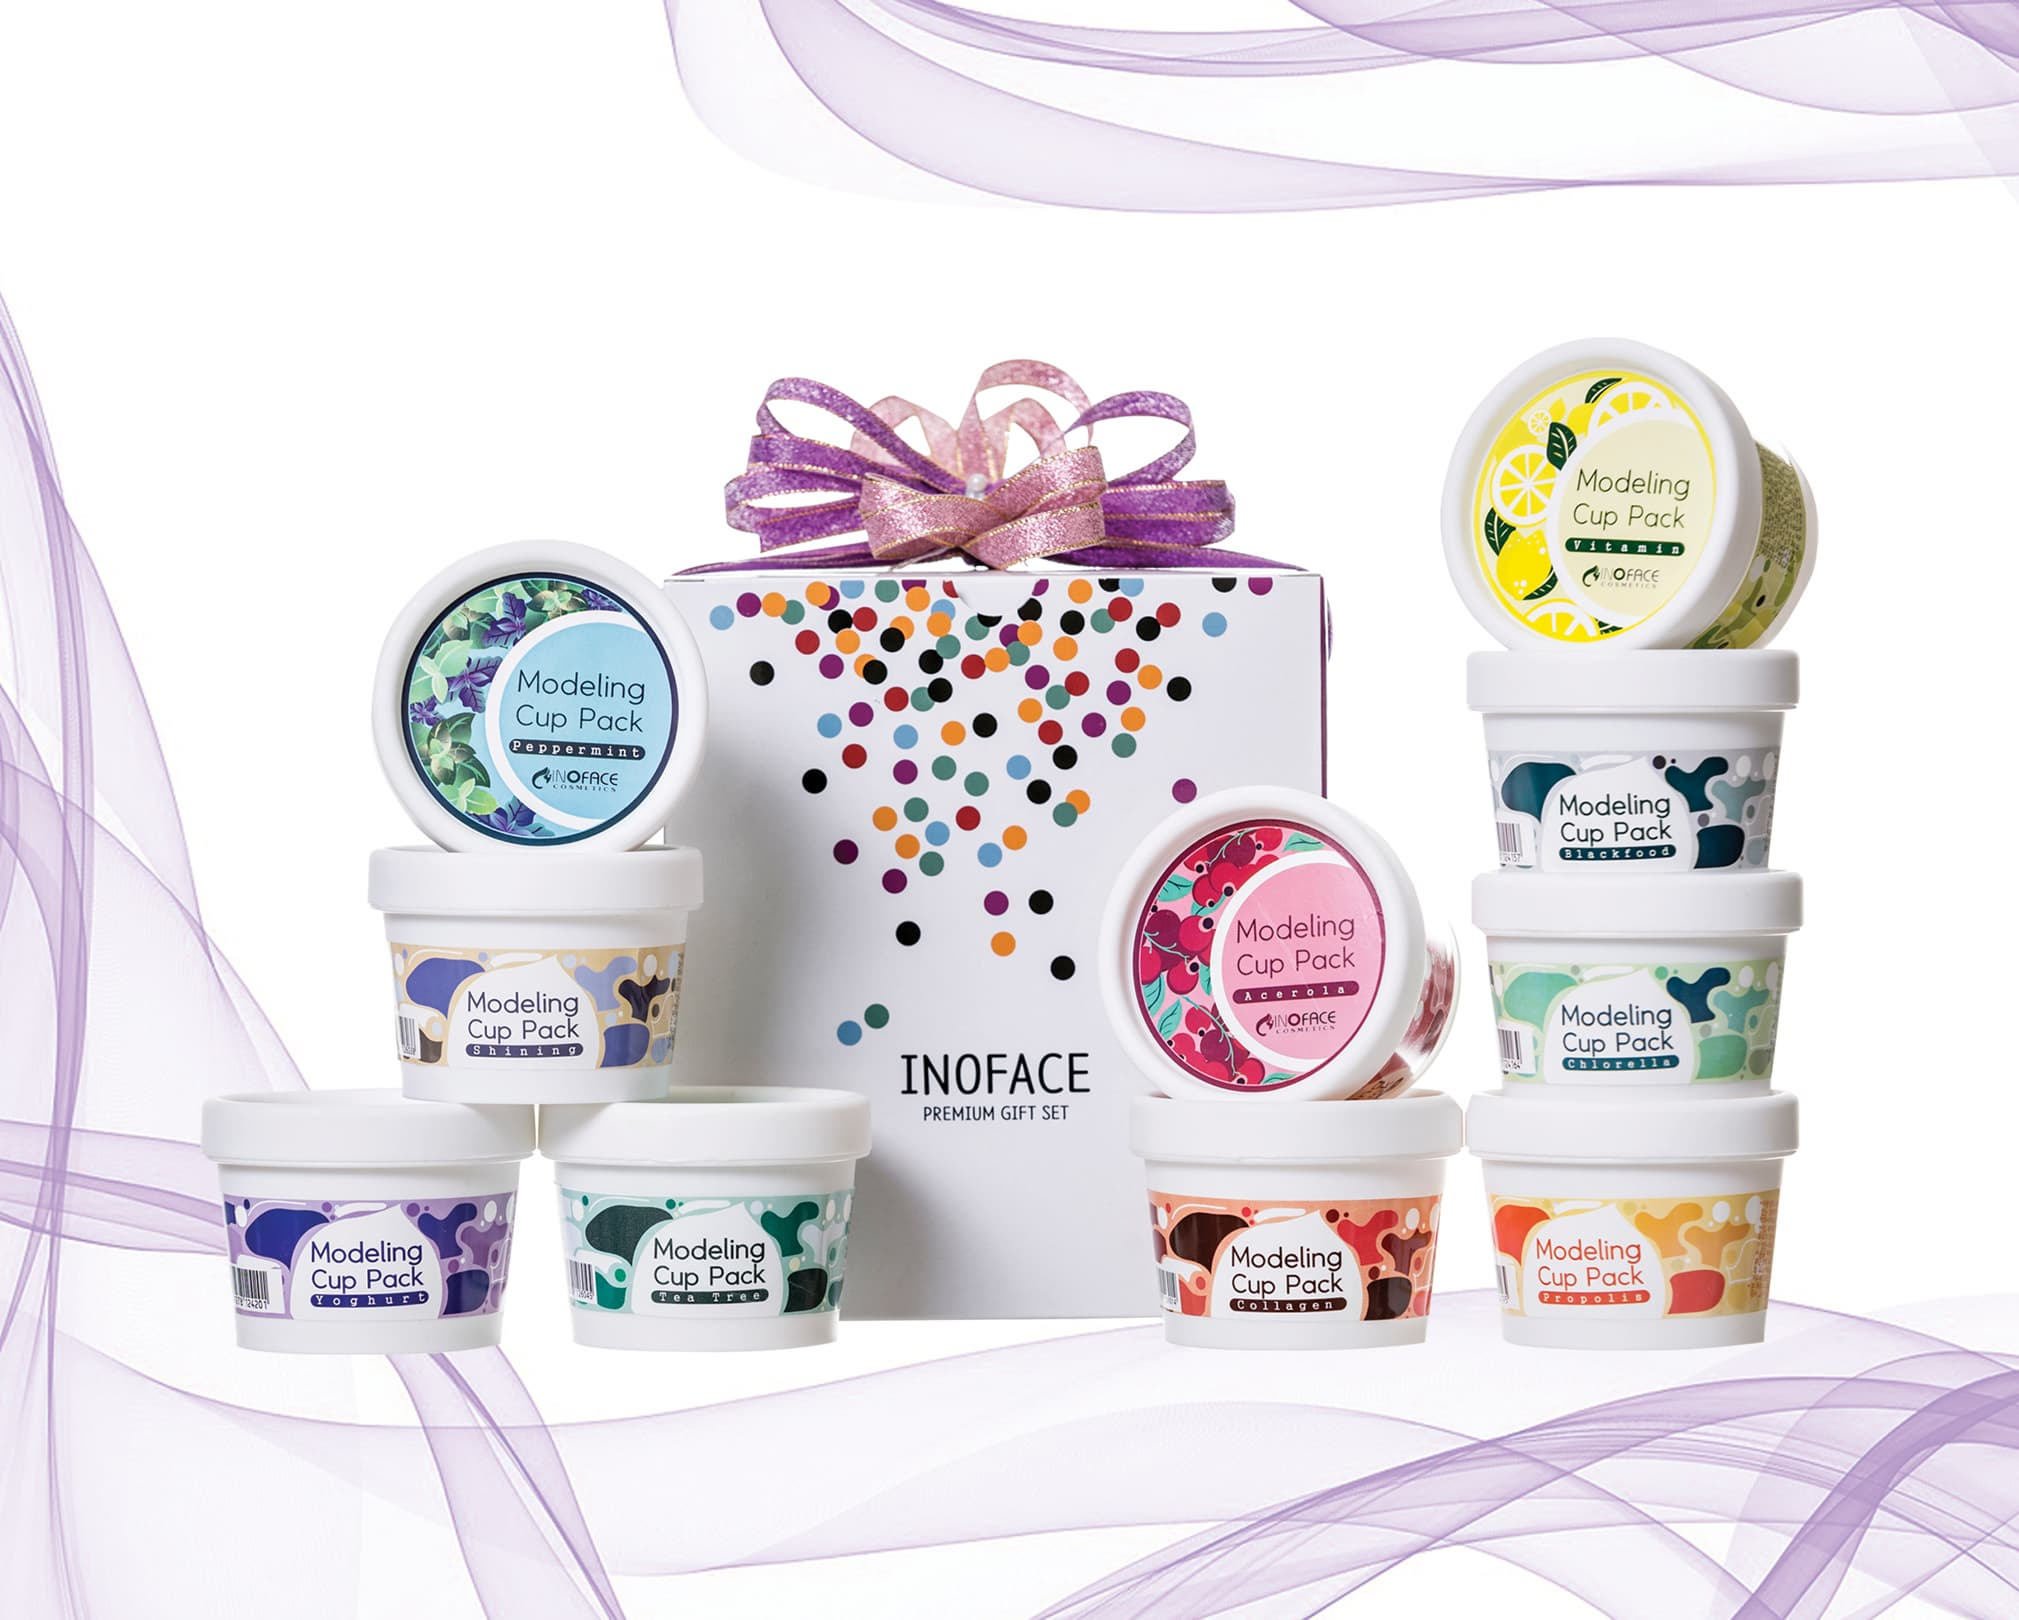 Inoface Collagen Modelin Cup Pack